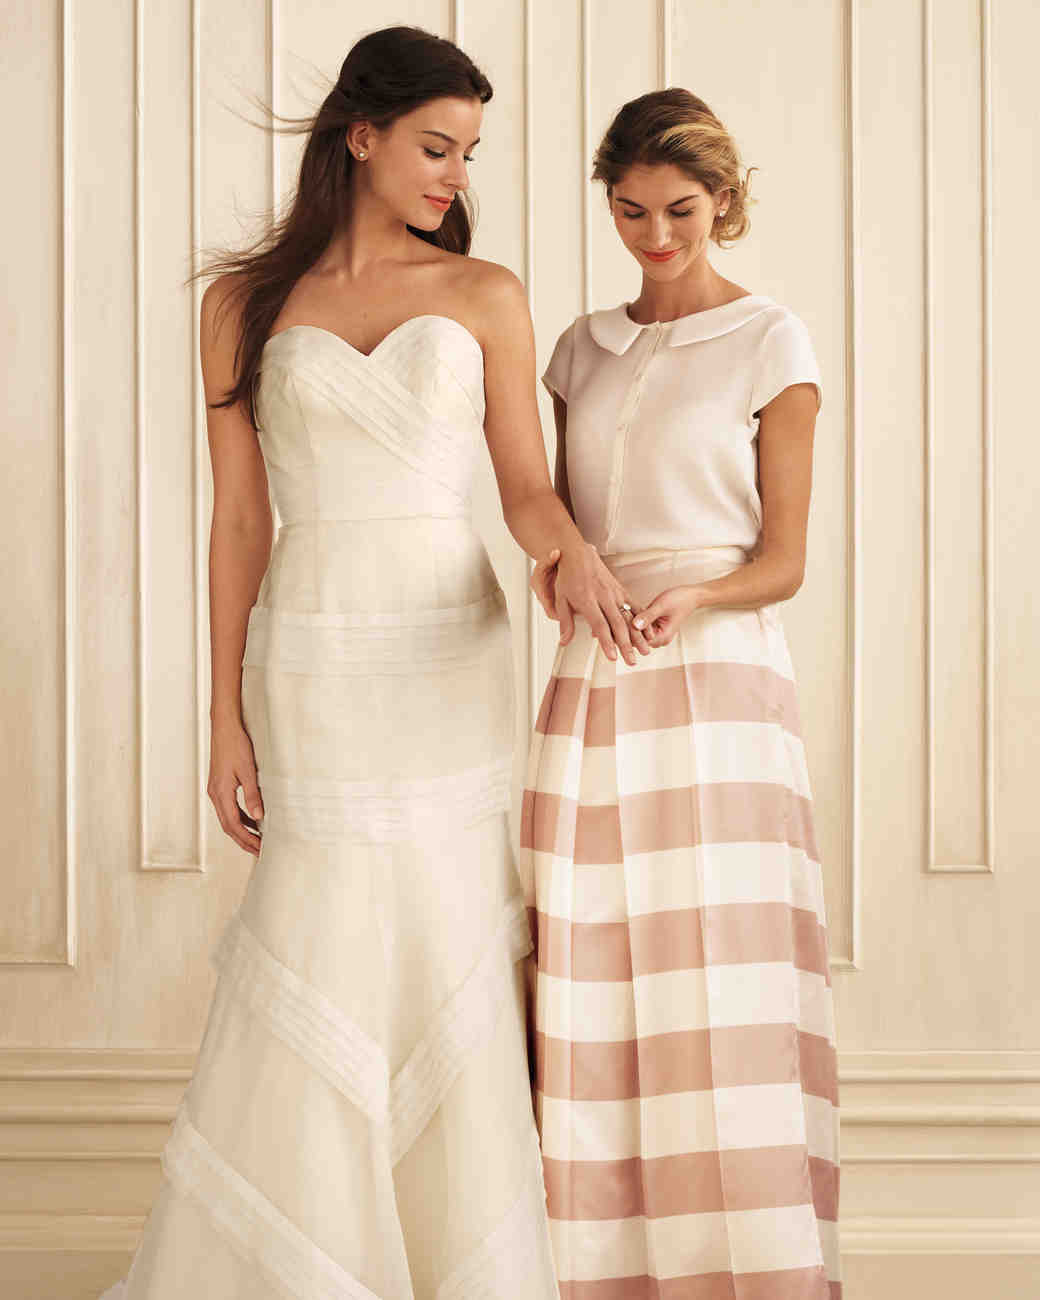 stripes-gowns-dresses-mwd108186.jpg